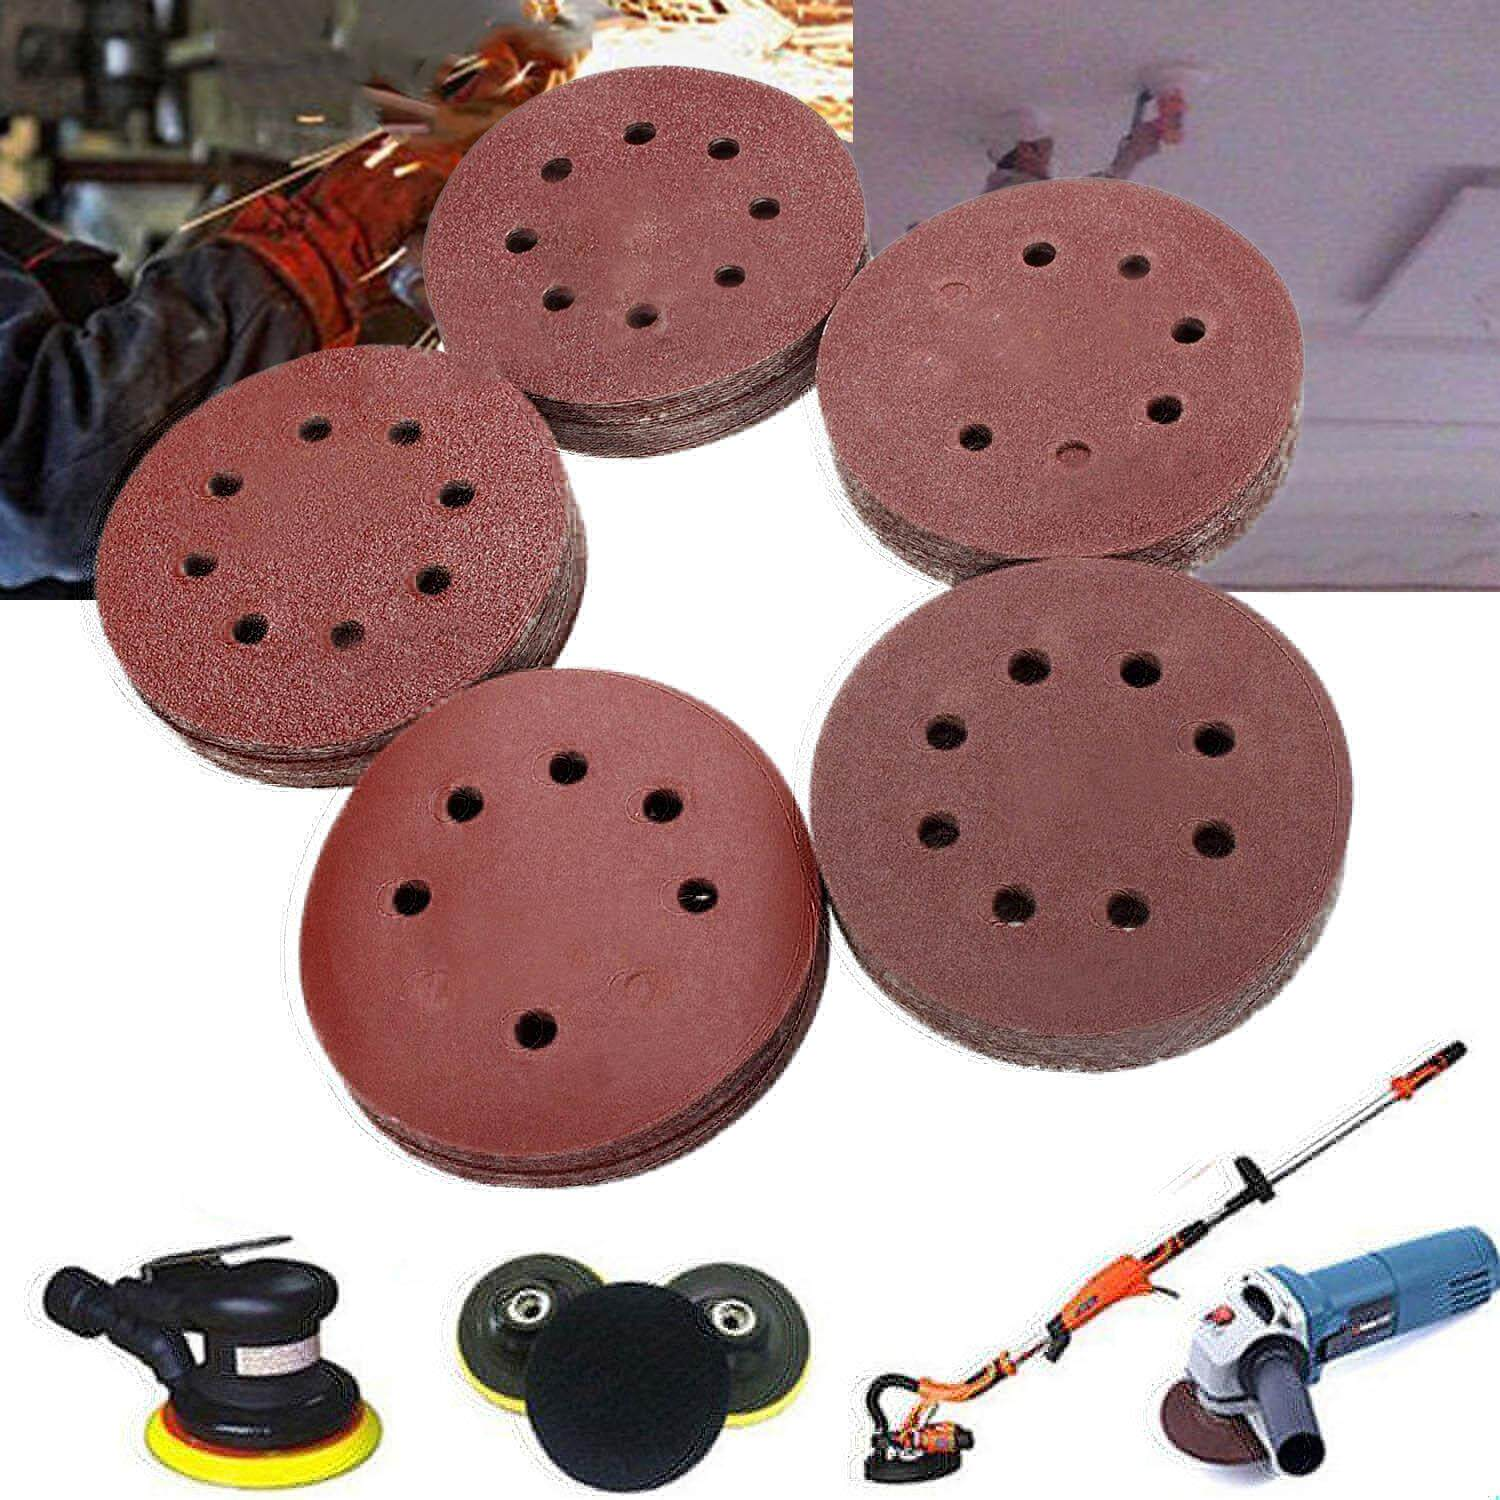 100 PCS Sanding Discs Pads Paper 60 80 100 120 240 Grits 8-Holes 125mm For Pneumatic Electric Manual Grinding Machines